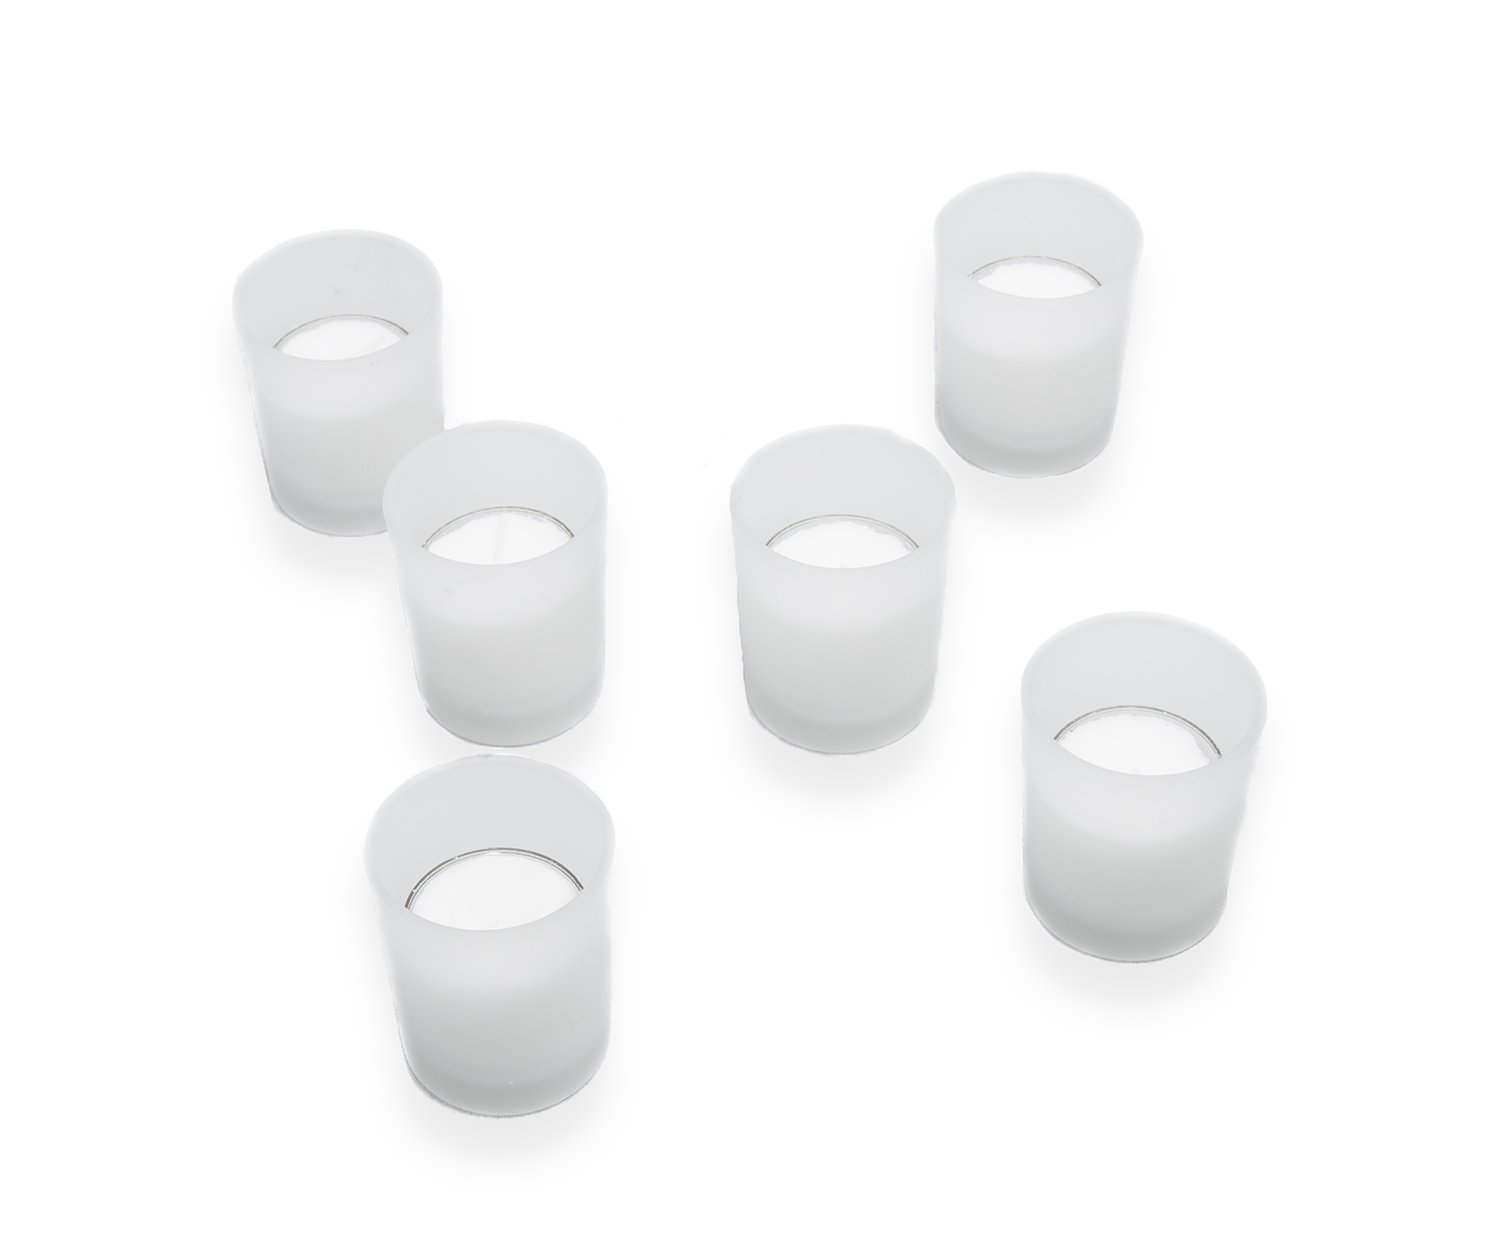 Higlow Candles Royalglow Best Glass Votive Candle Holders (Frosted Votive Holder), Set of 12